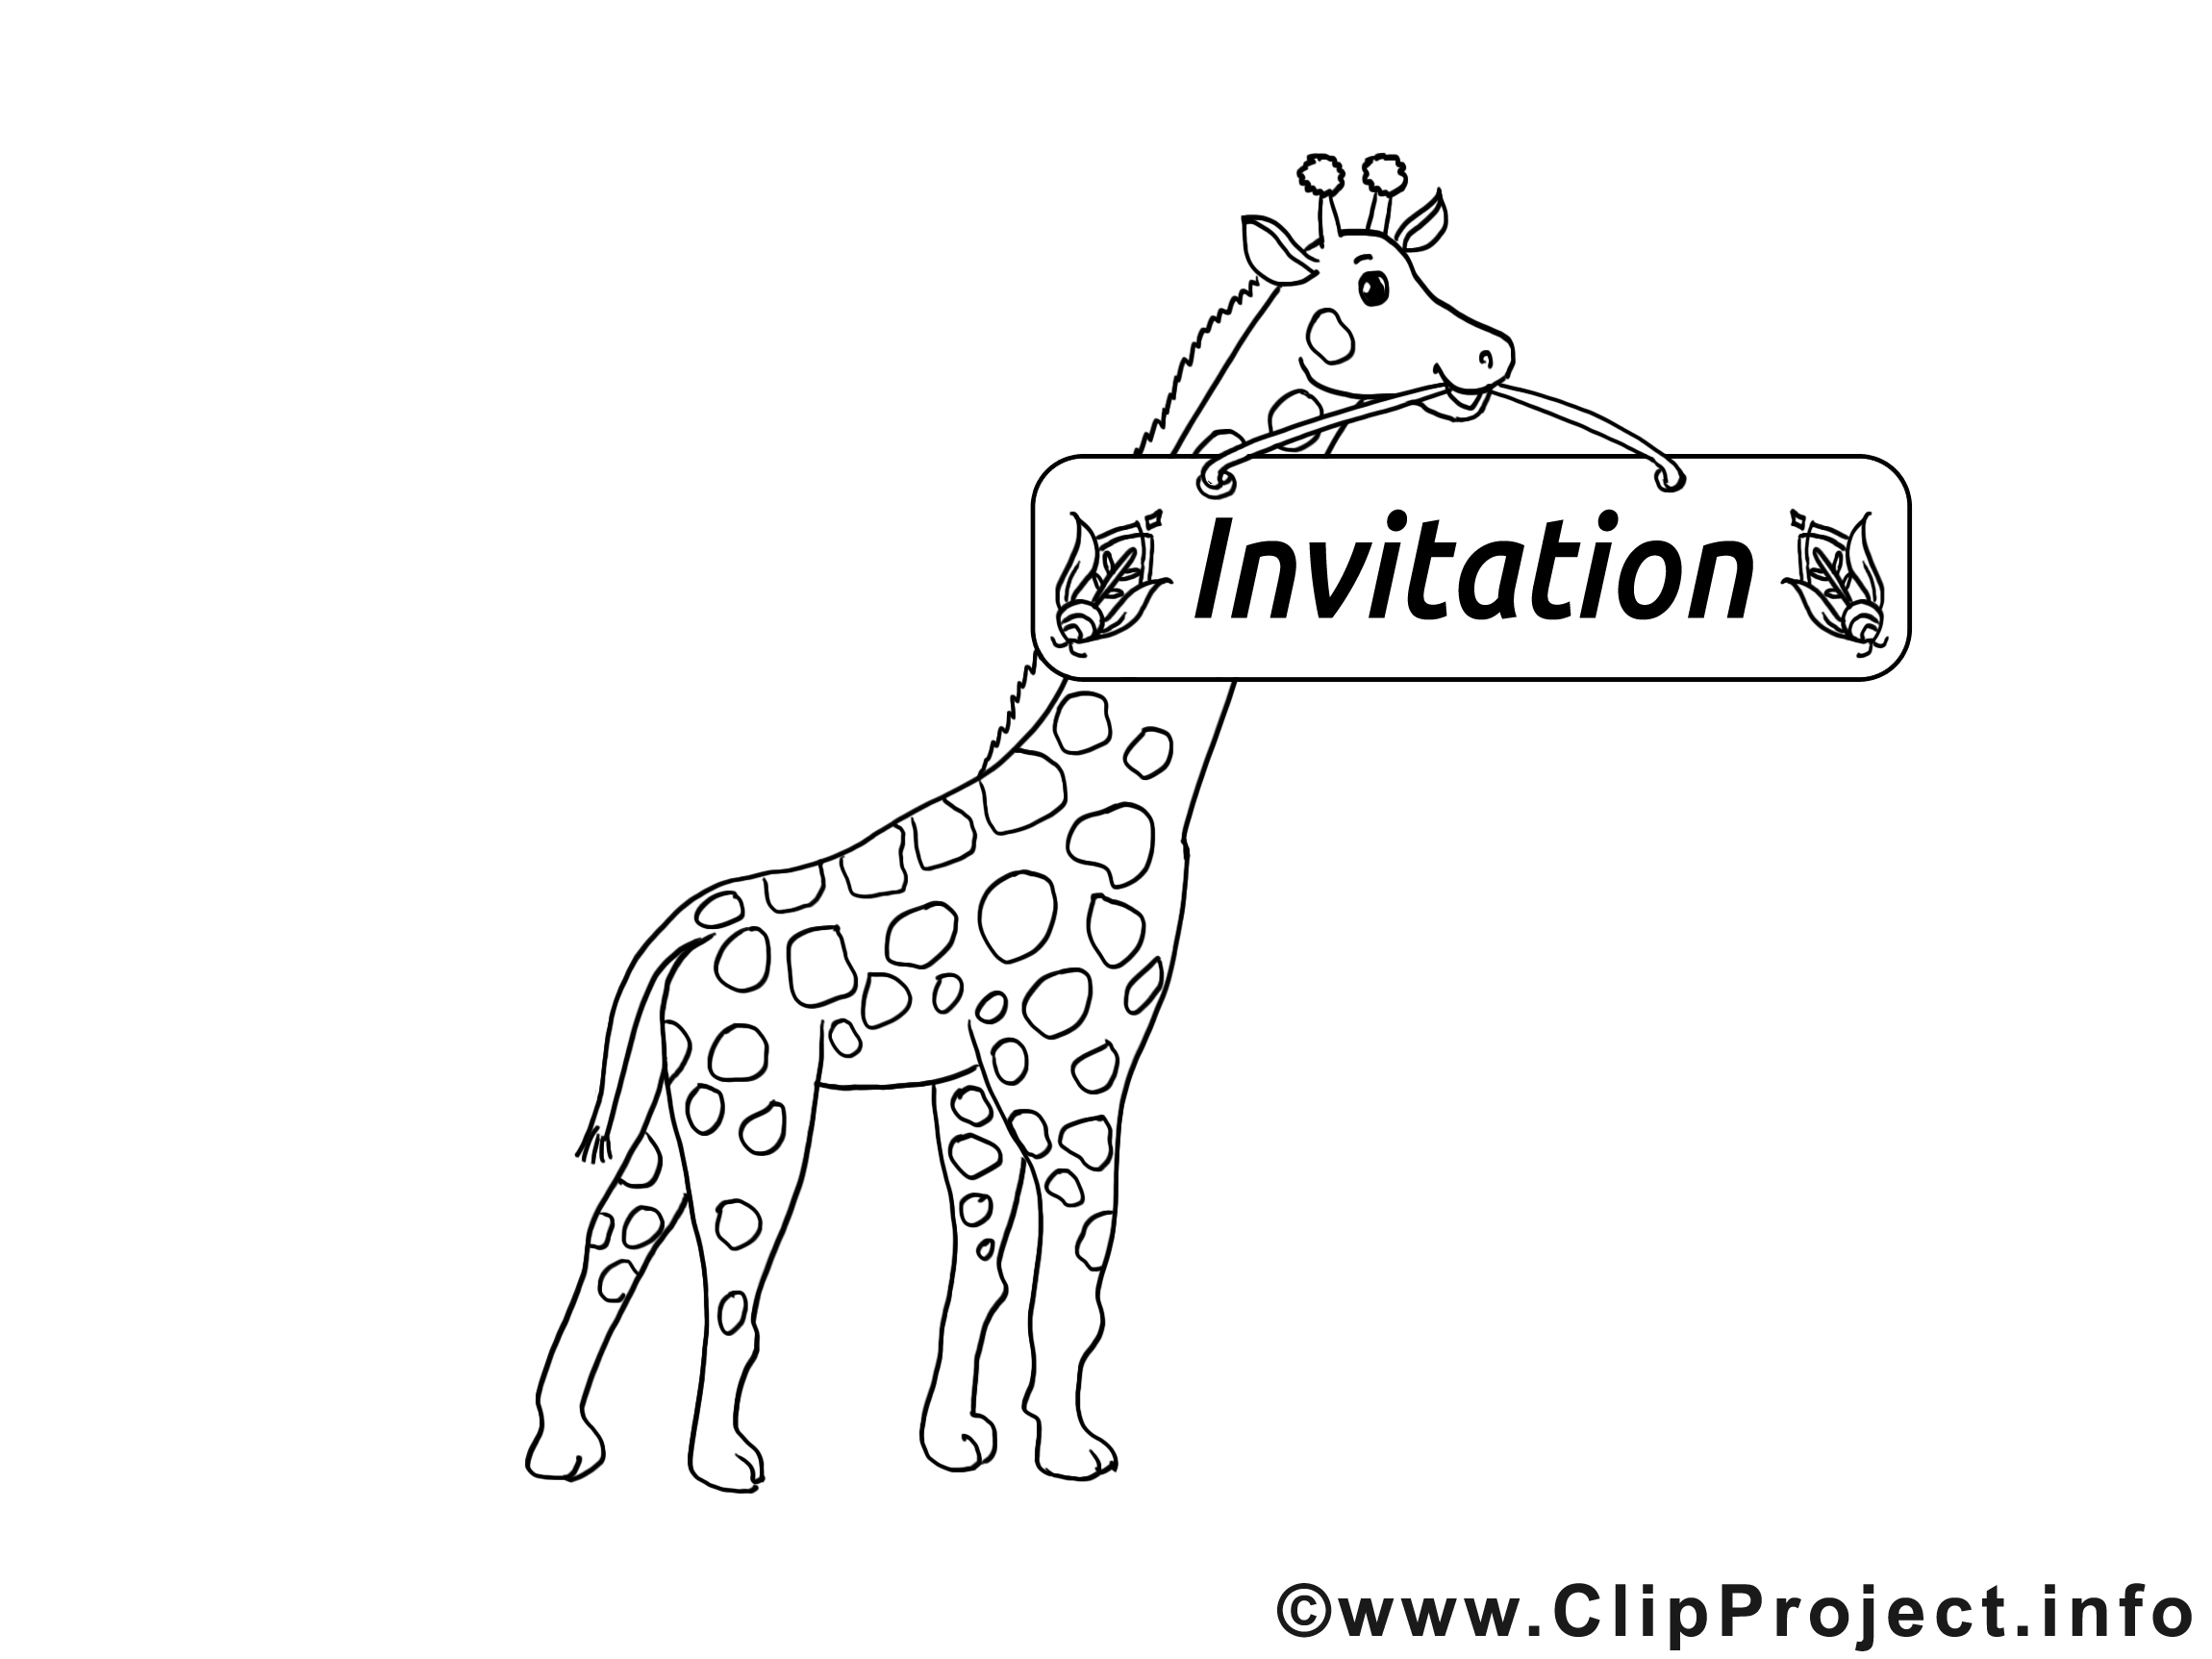 Girafe images à colorier - Invitation dessins gratuits